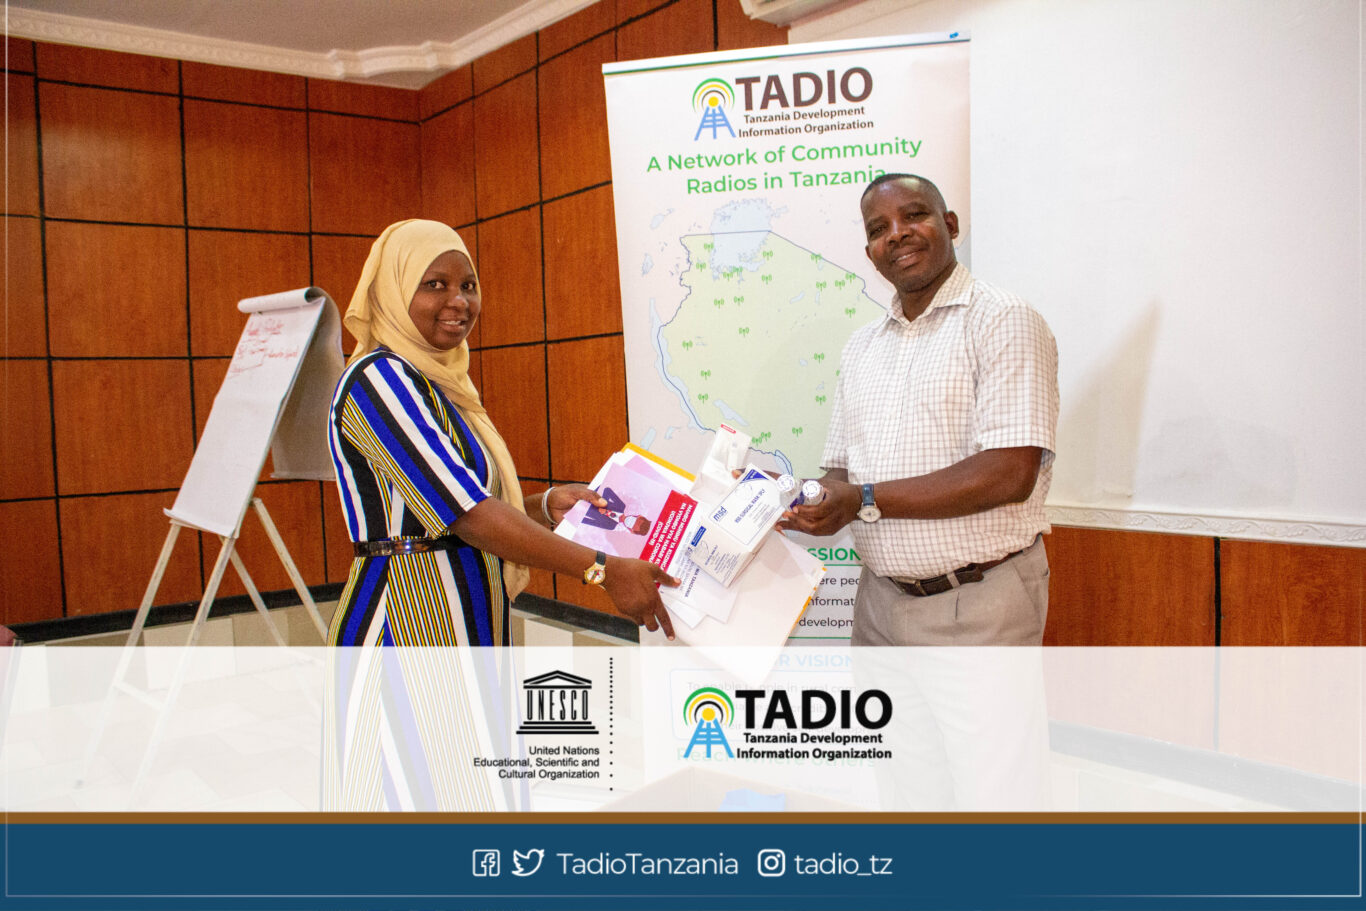 Deputy Uyui FM Manager, Ms. Nyamiz Mdaki receiving health protection equipment from TADIO Chairperson, Mr. Prosper Kwigize